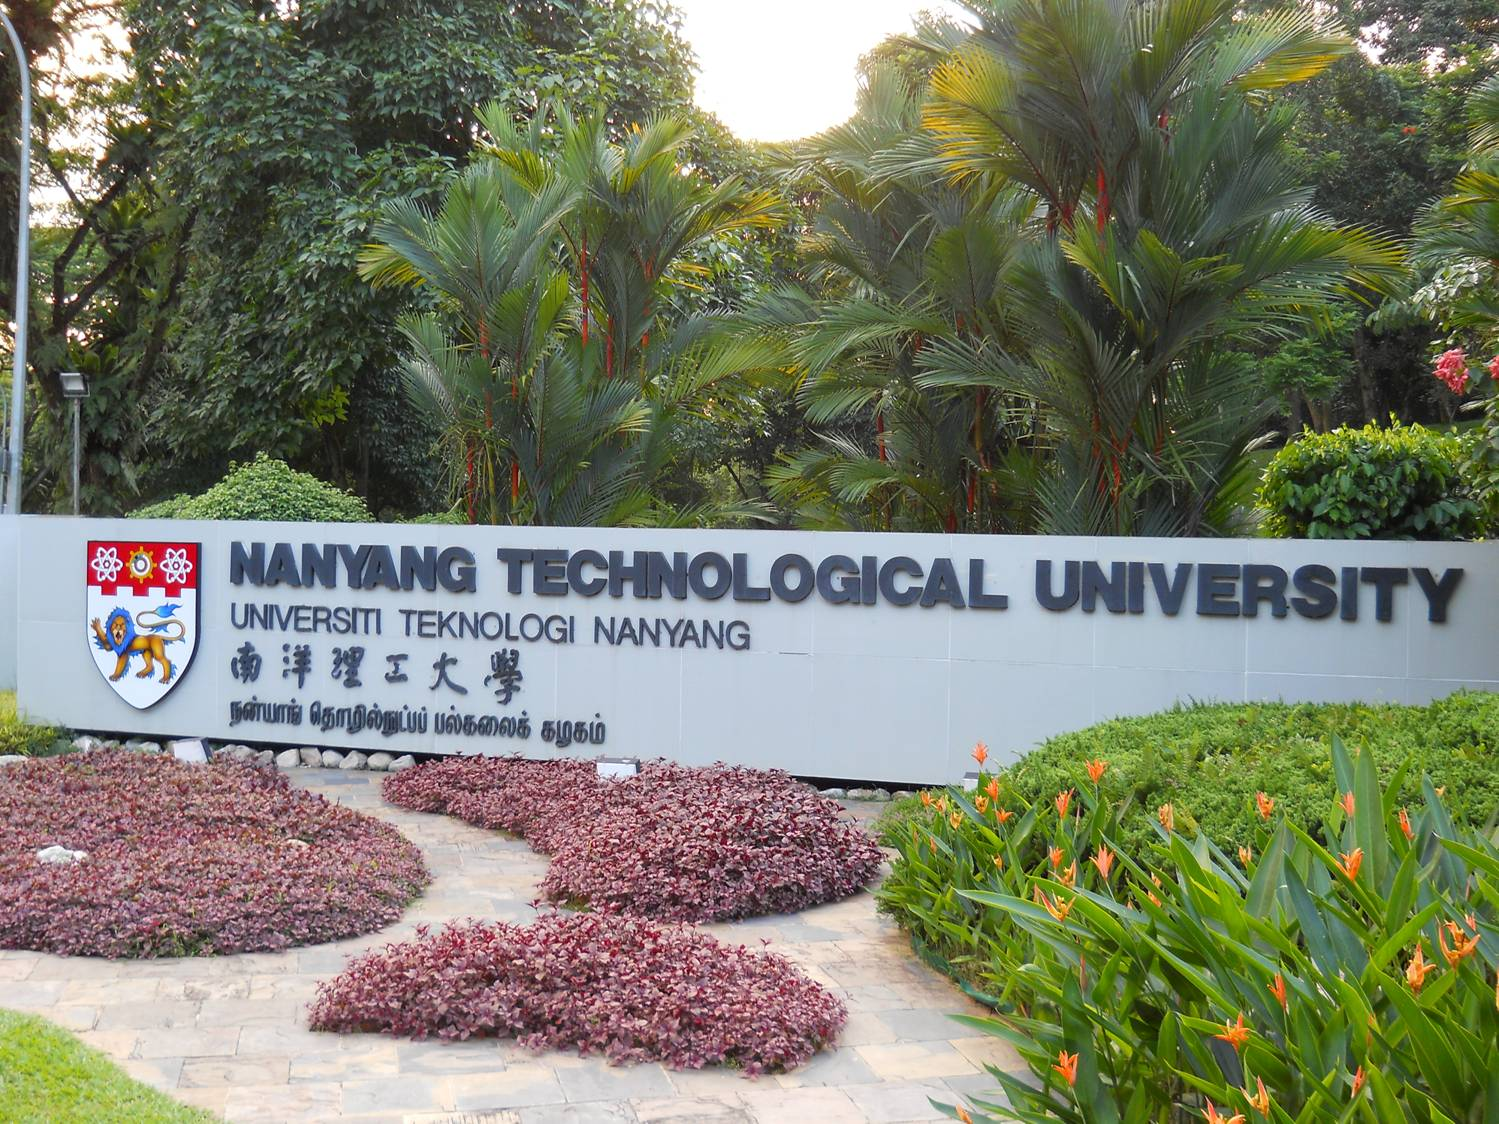 NTU's accomplishment in the QS World University Rankings follows recent successes in other international league tables.